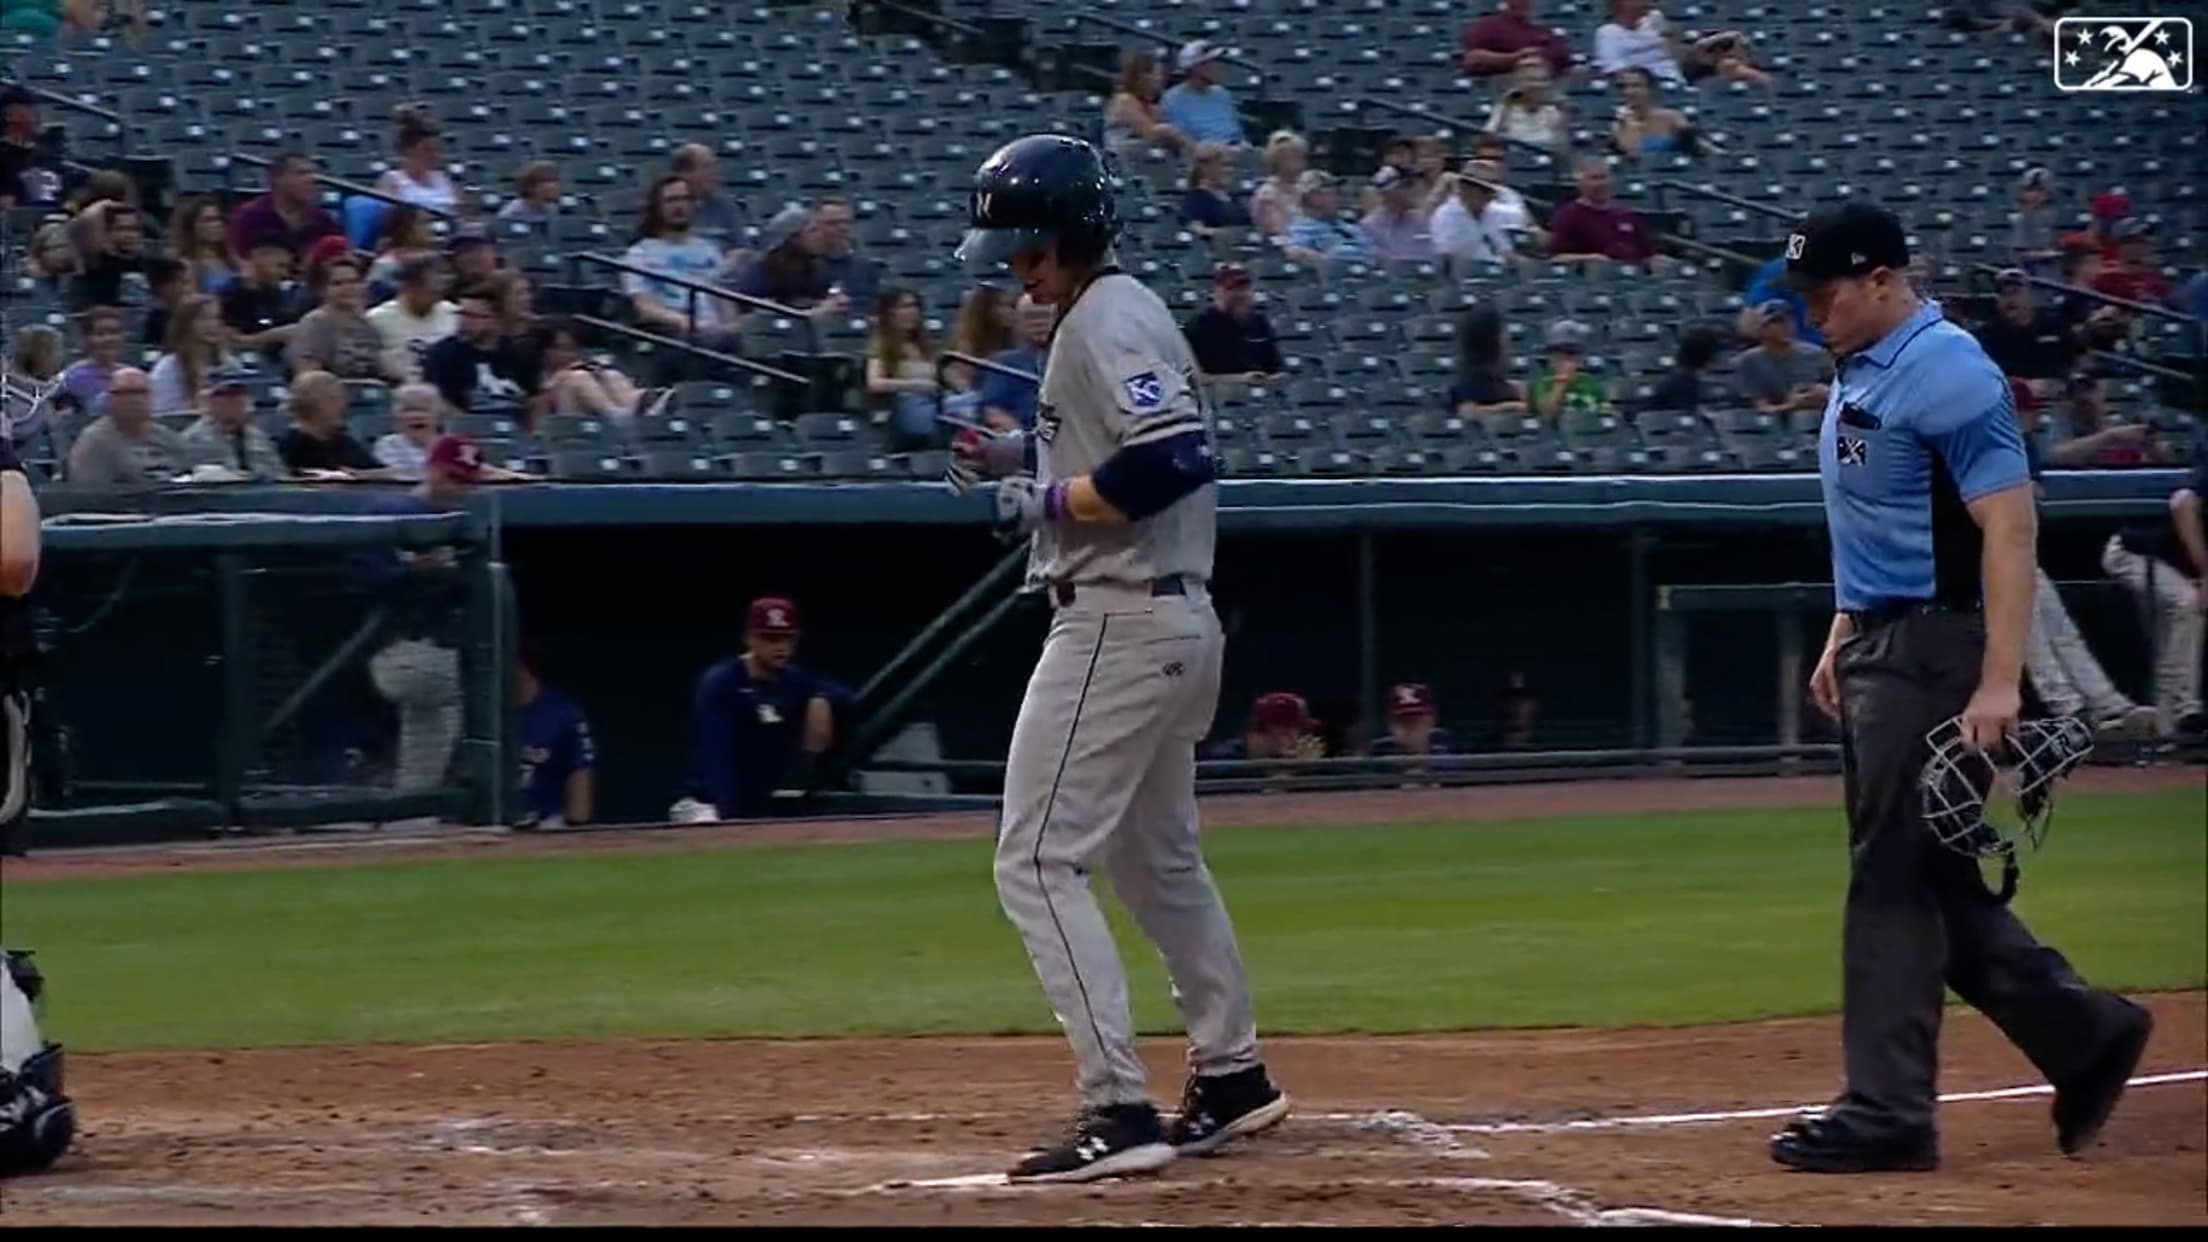 Witt loses HR after missing home